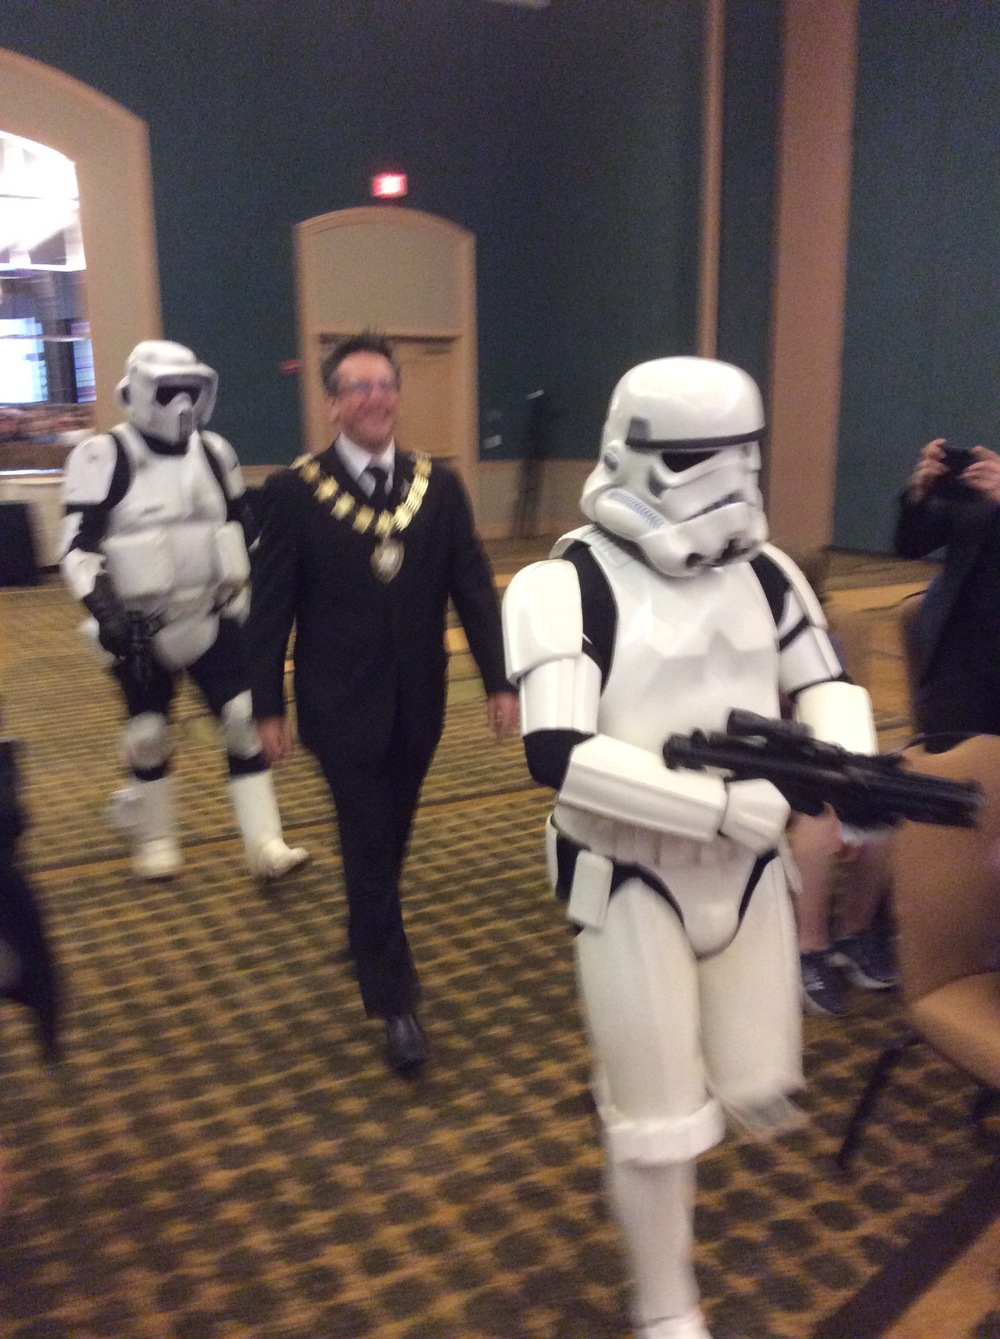 IBM International President Shawn Farquhar and Storm Troopers